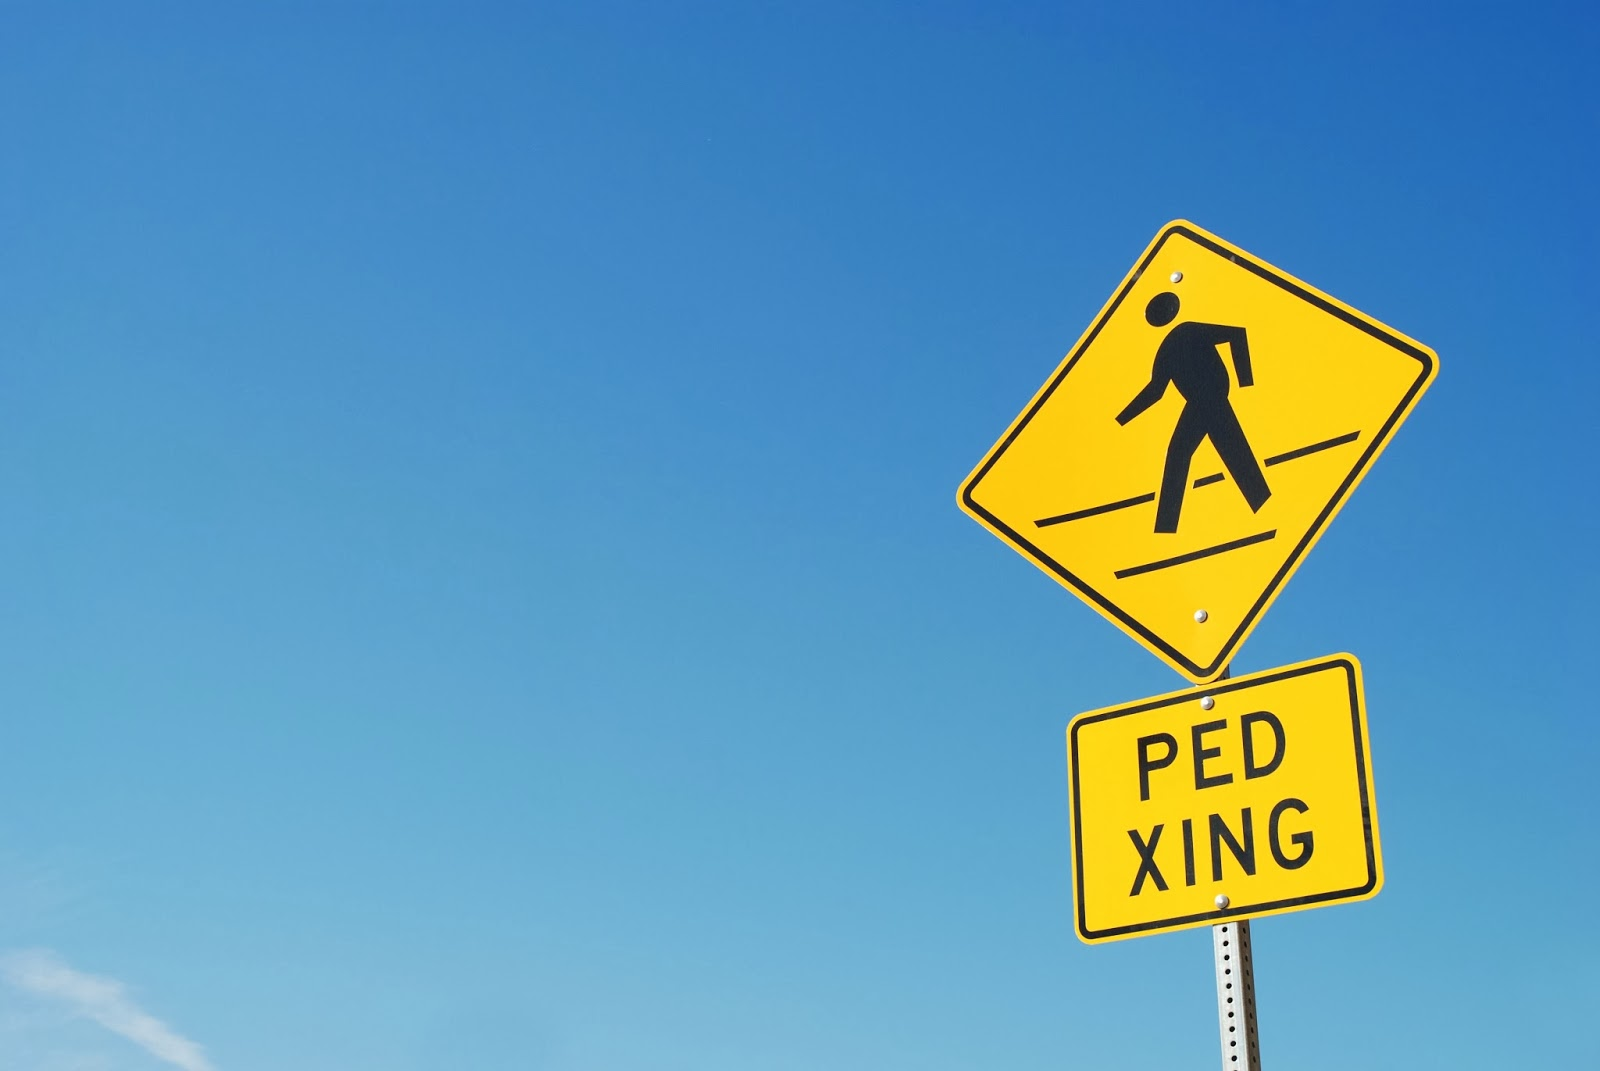 Ped Xing means Pedestrian Crossing